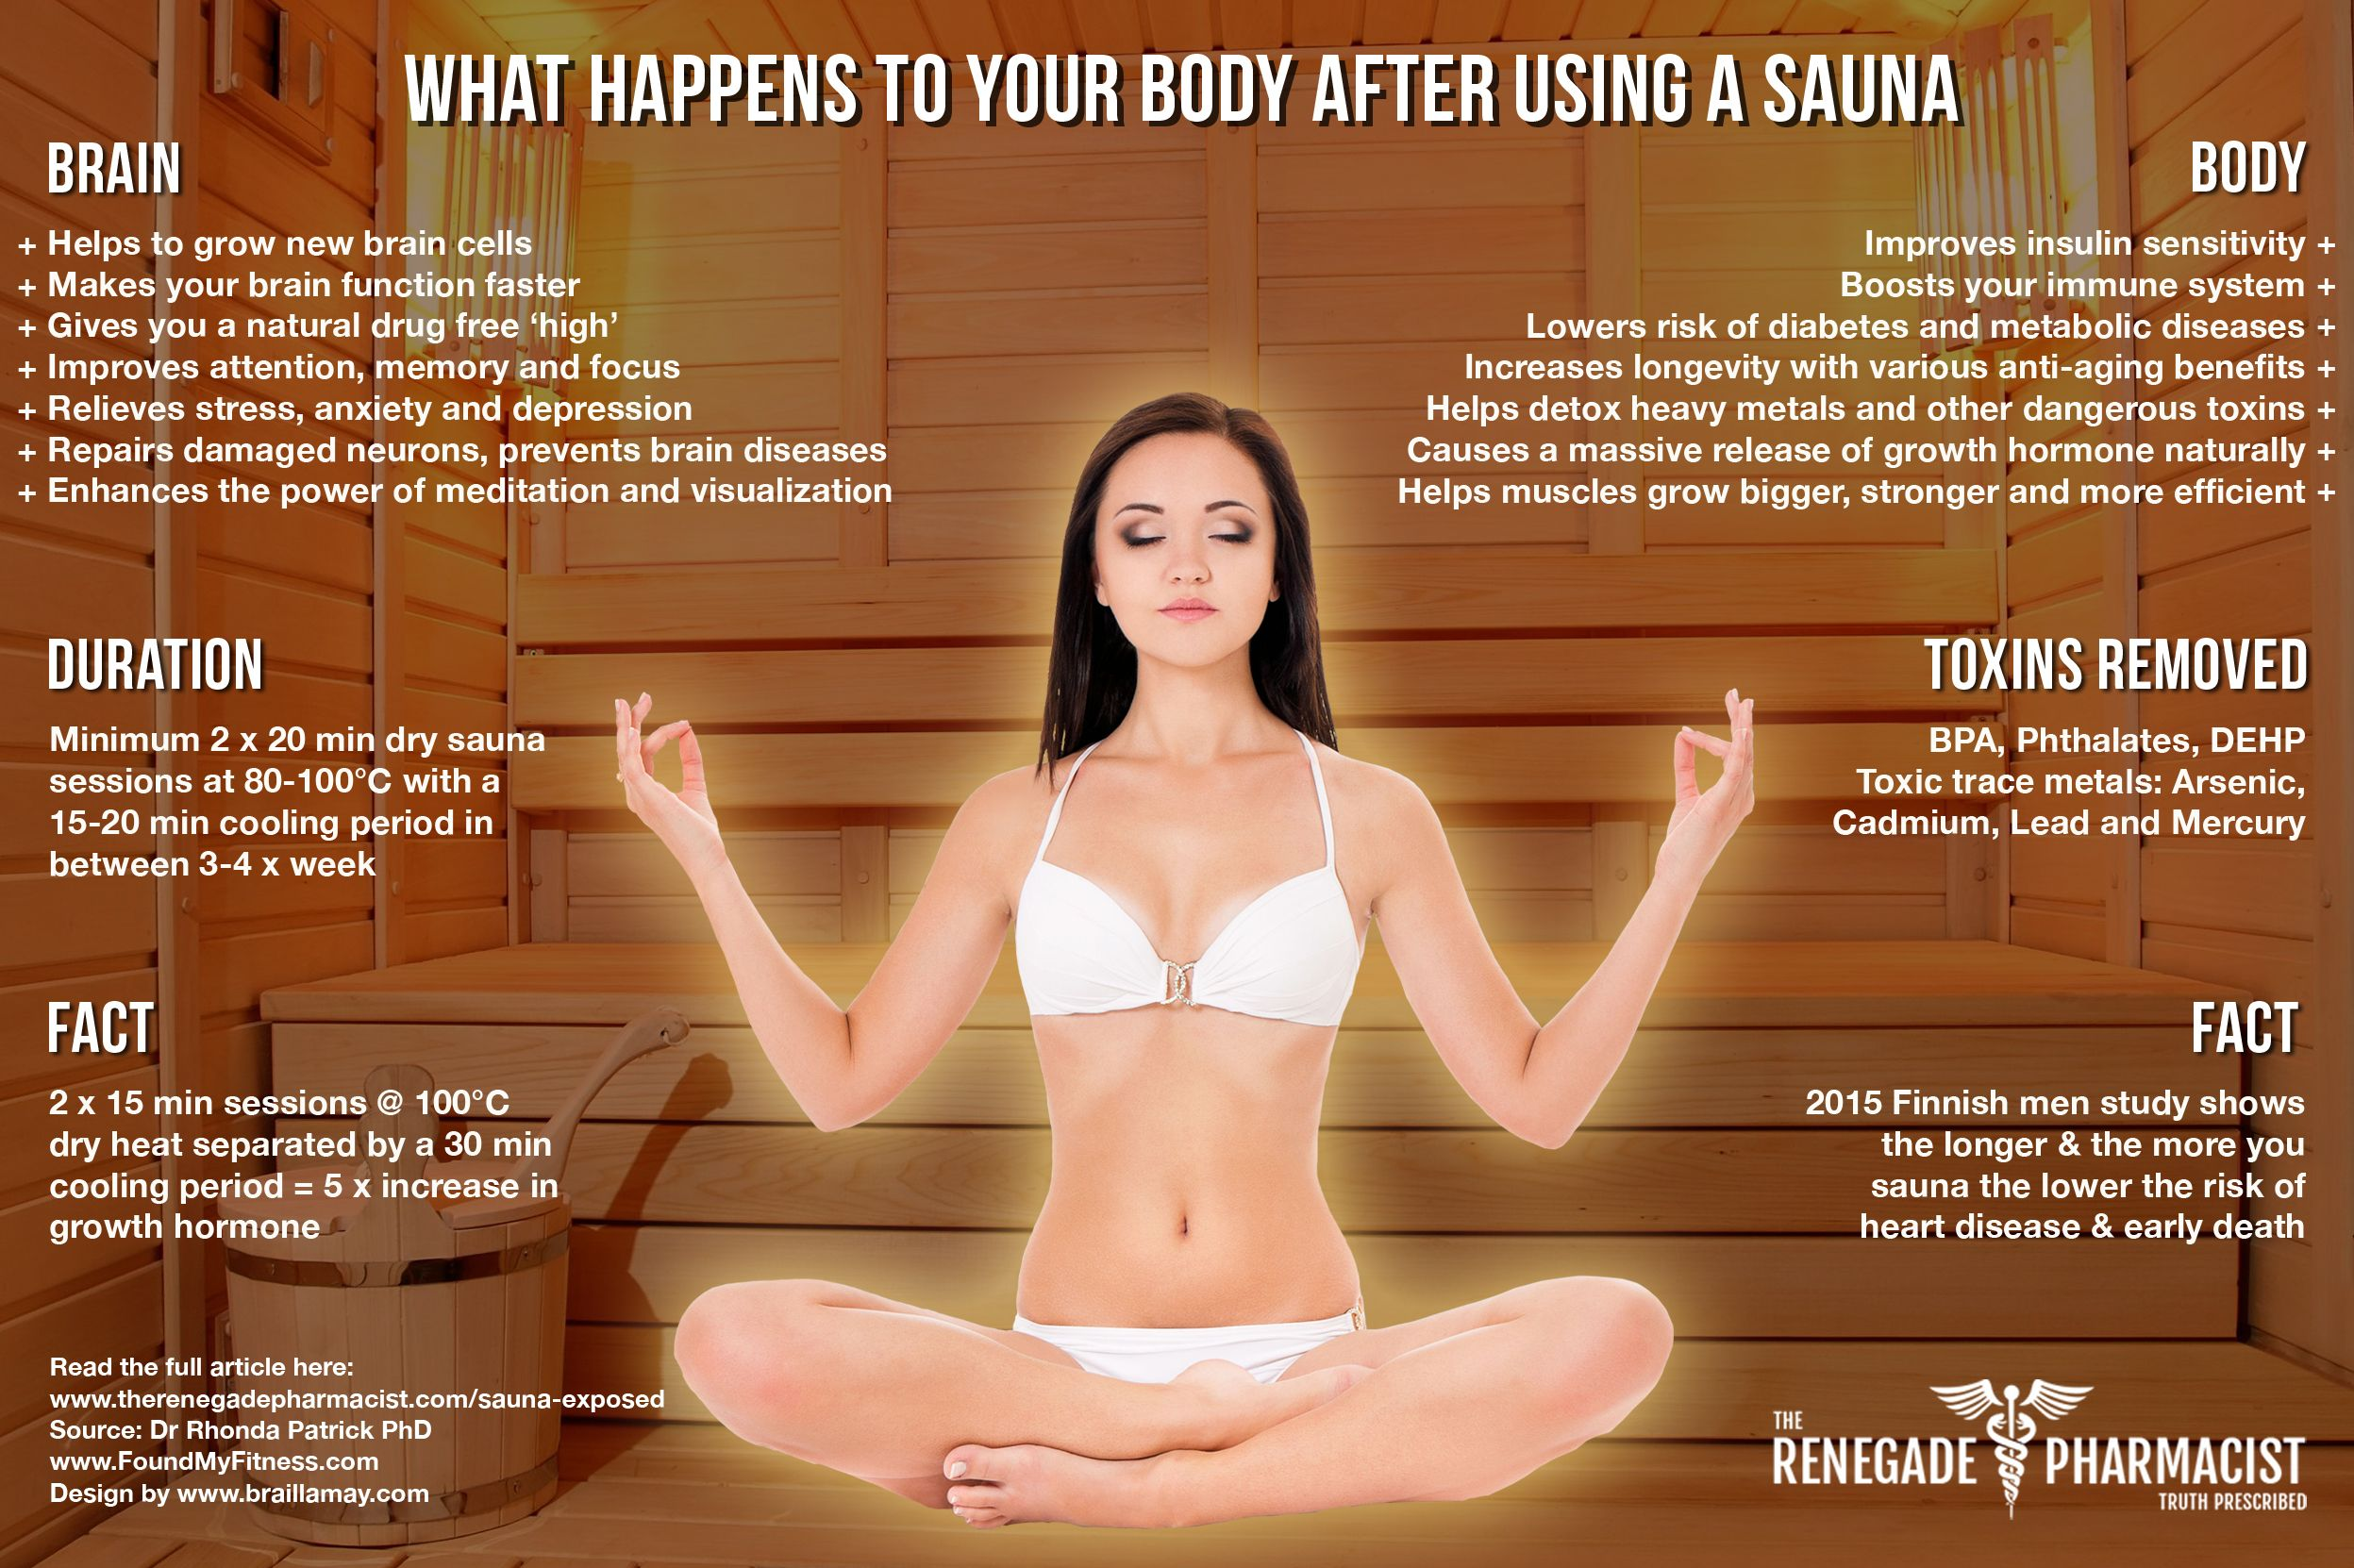 Sauna Exposed What Happens To Your Body After Using A Sauna The Renegade Pharmacist Sauna Benefits Sauna Immune System